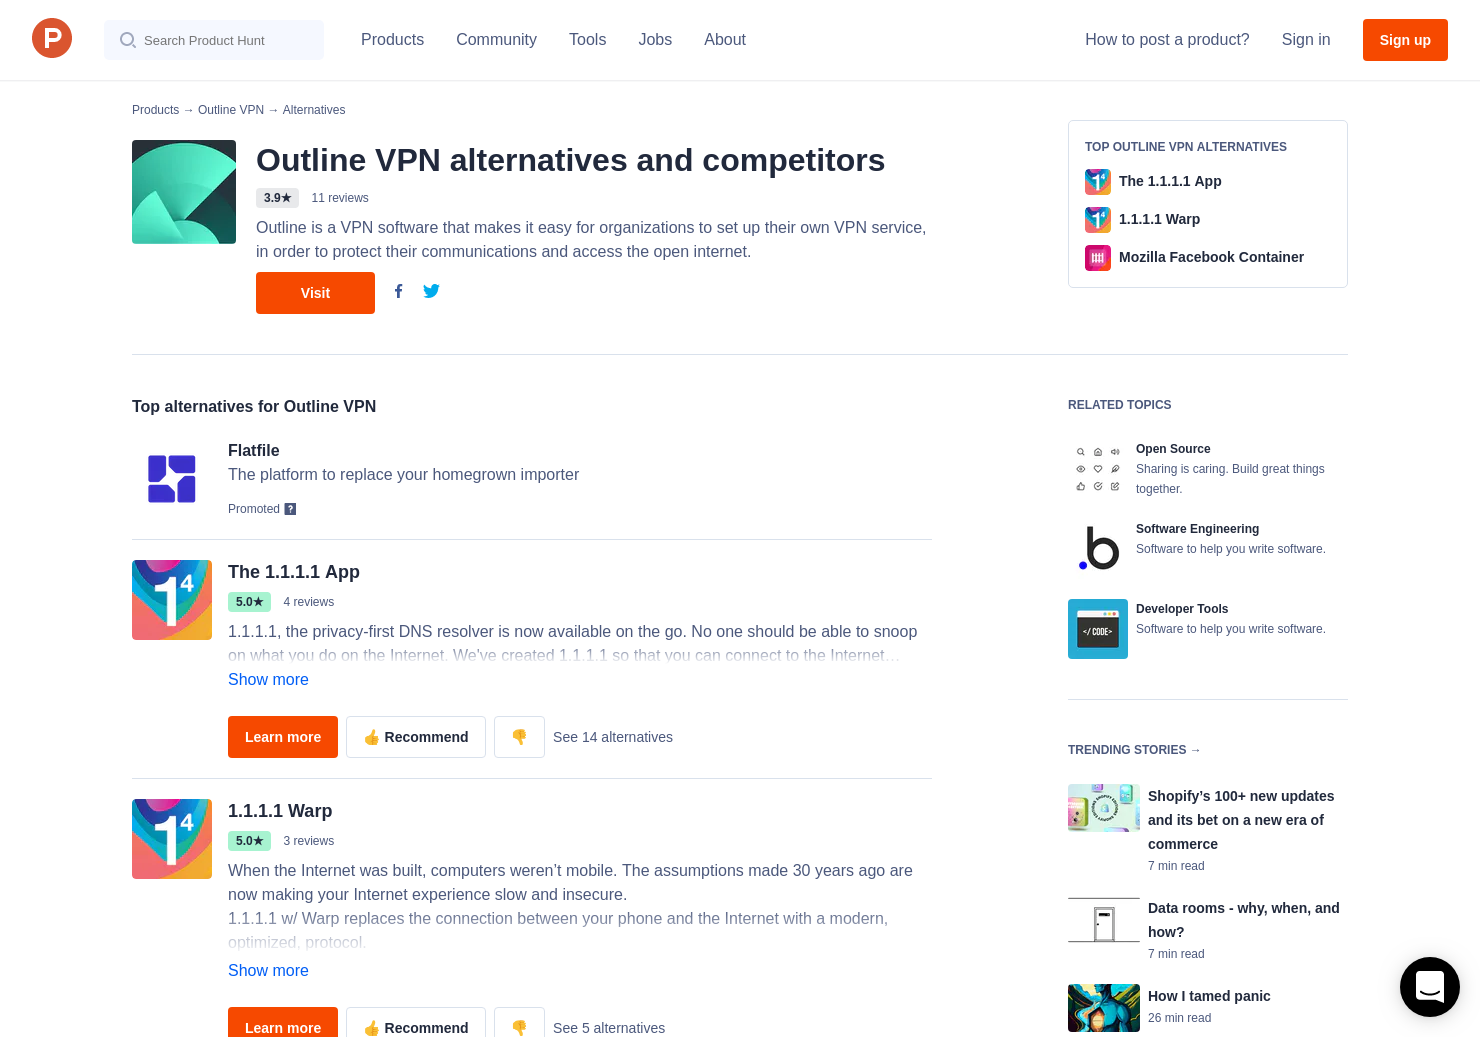 22 Alternatives to Outline by Alphabet | Product Hunt